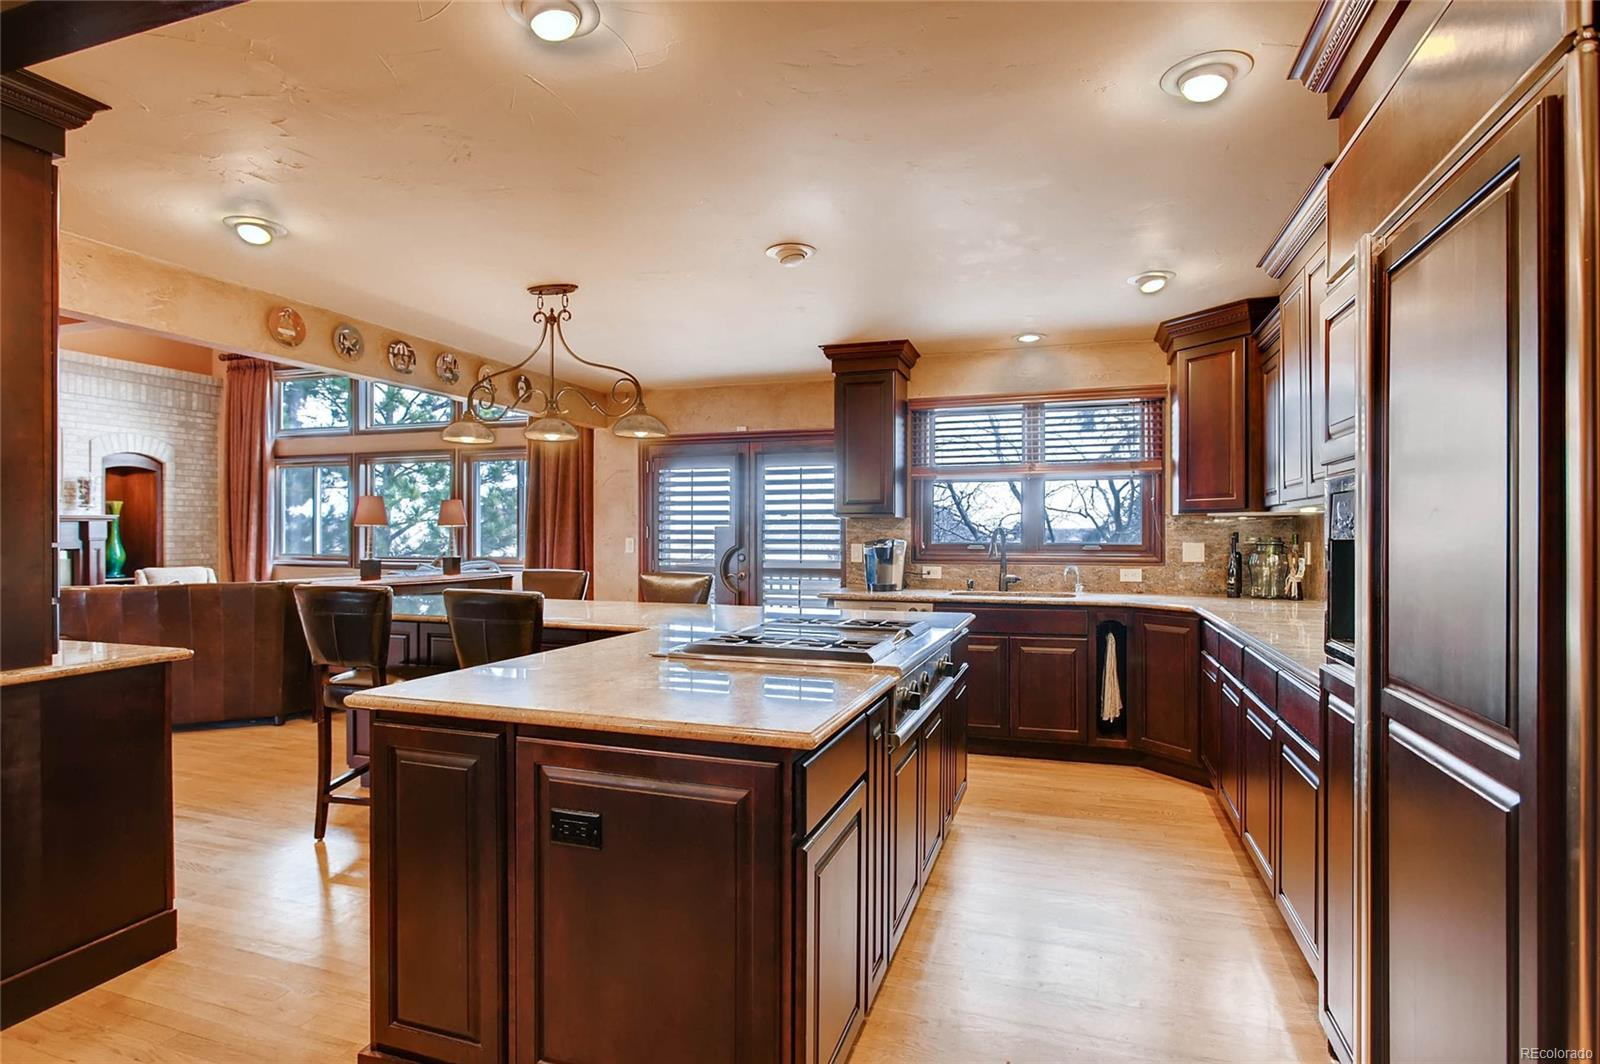 Recessed lighting and loads of cabinet and counter space